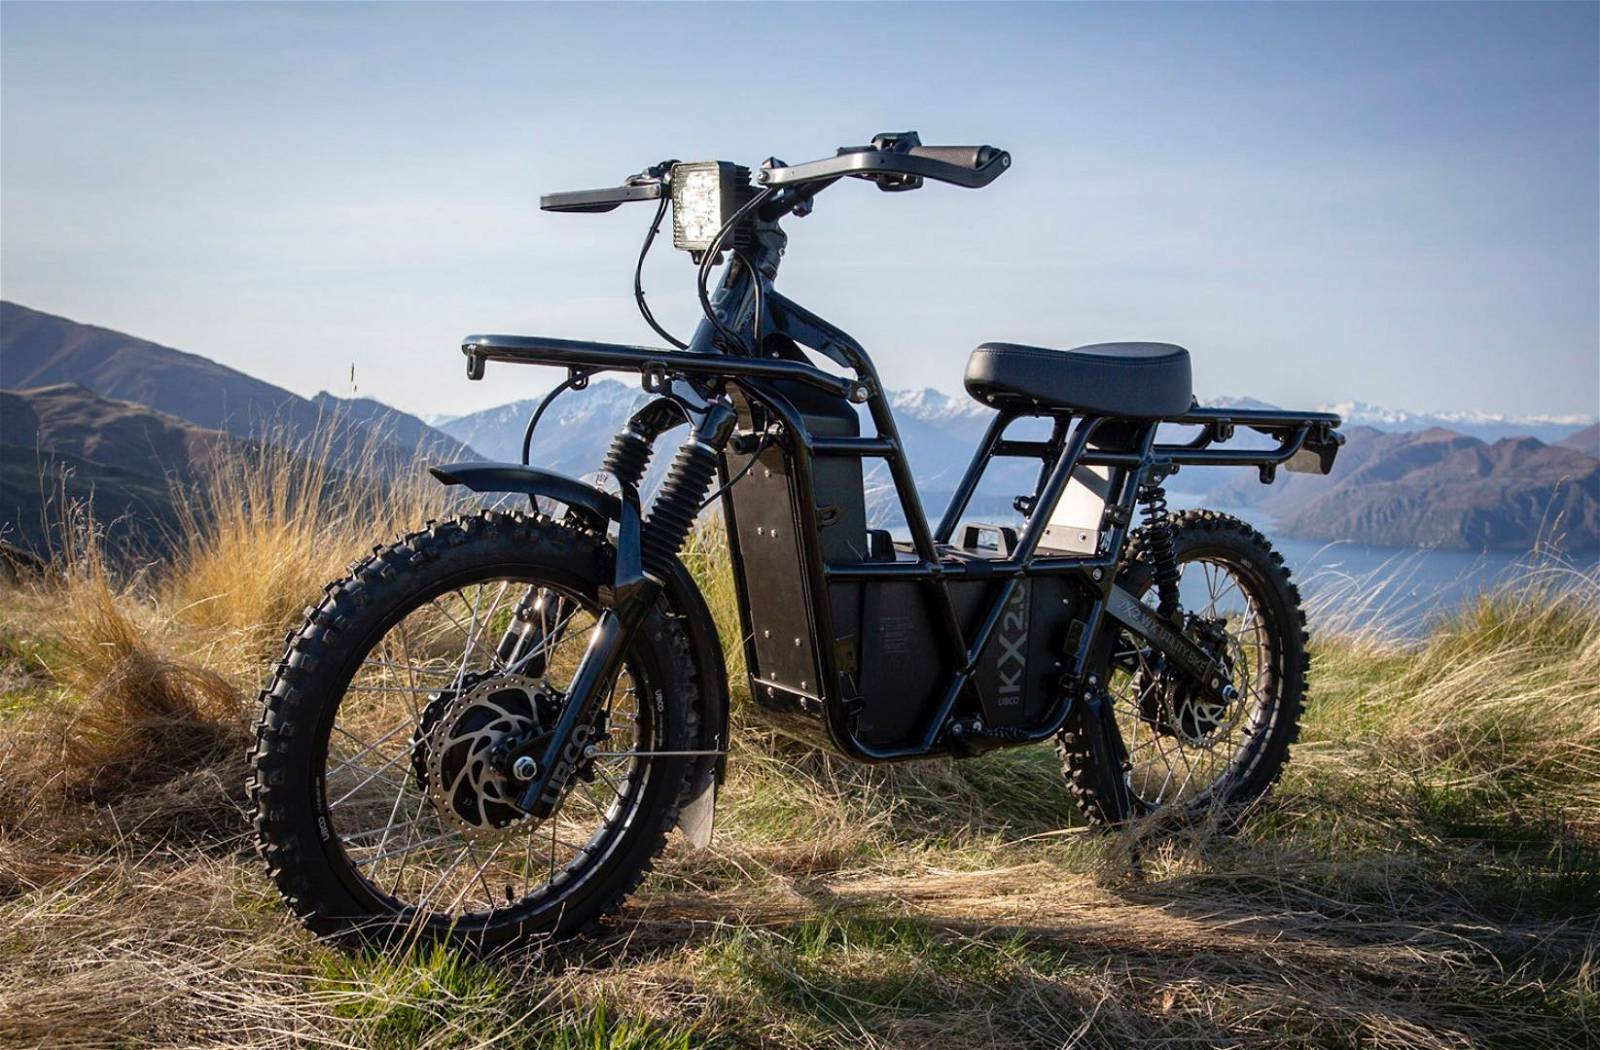 UBCO 2x2 Electric Bike Overview [Top 7 Features for Hunting]